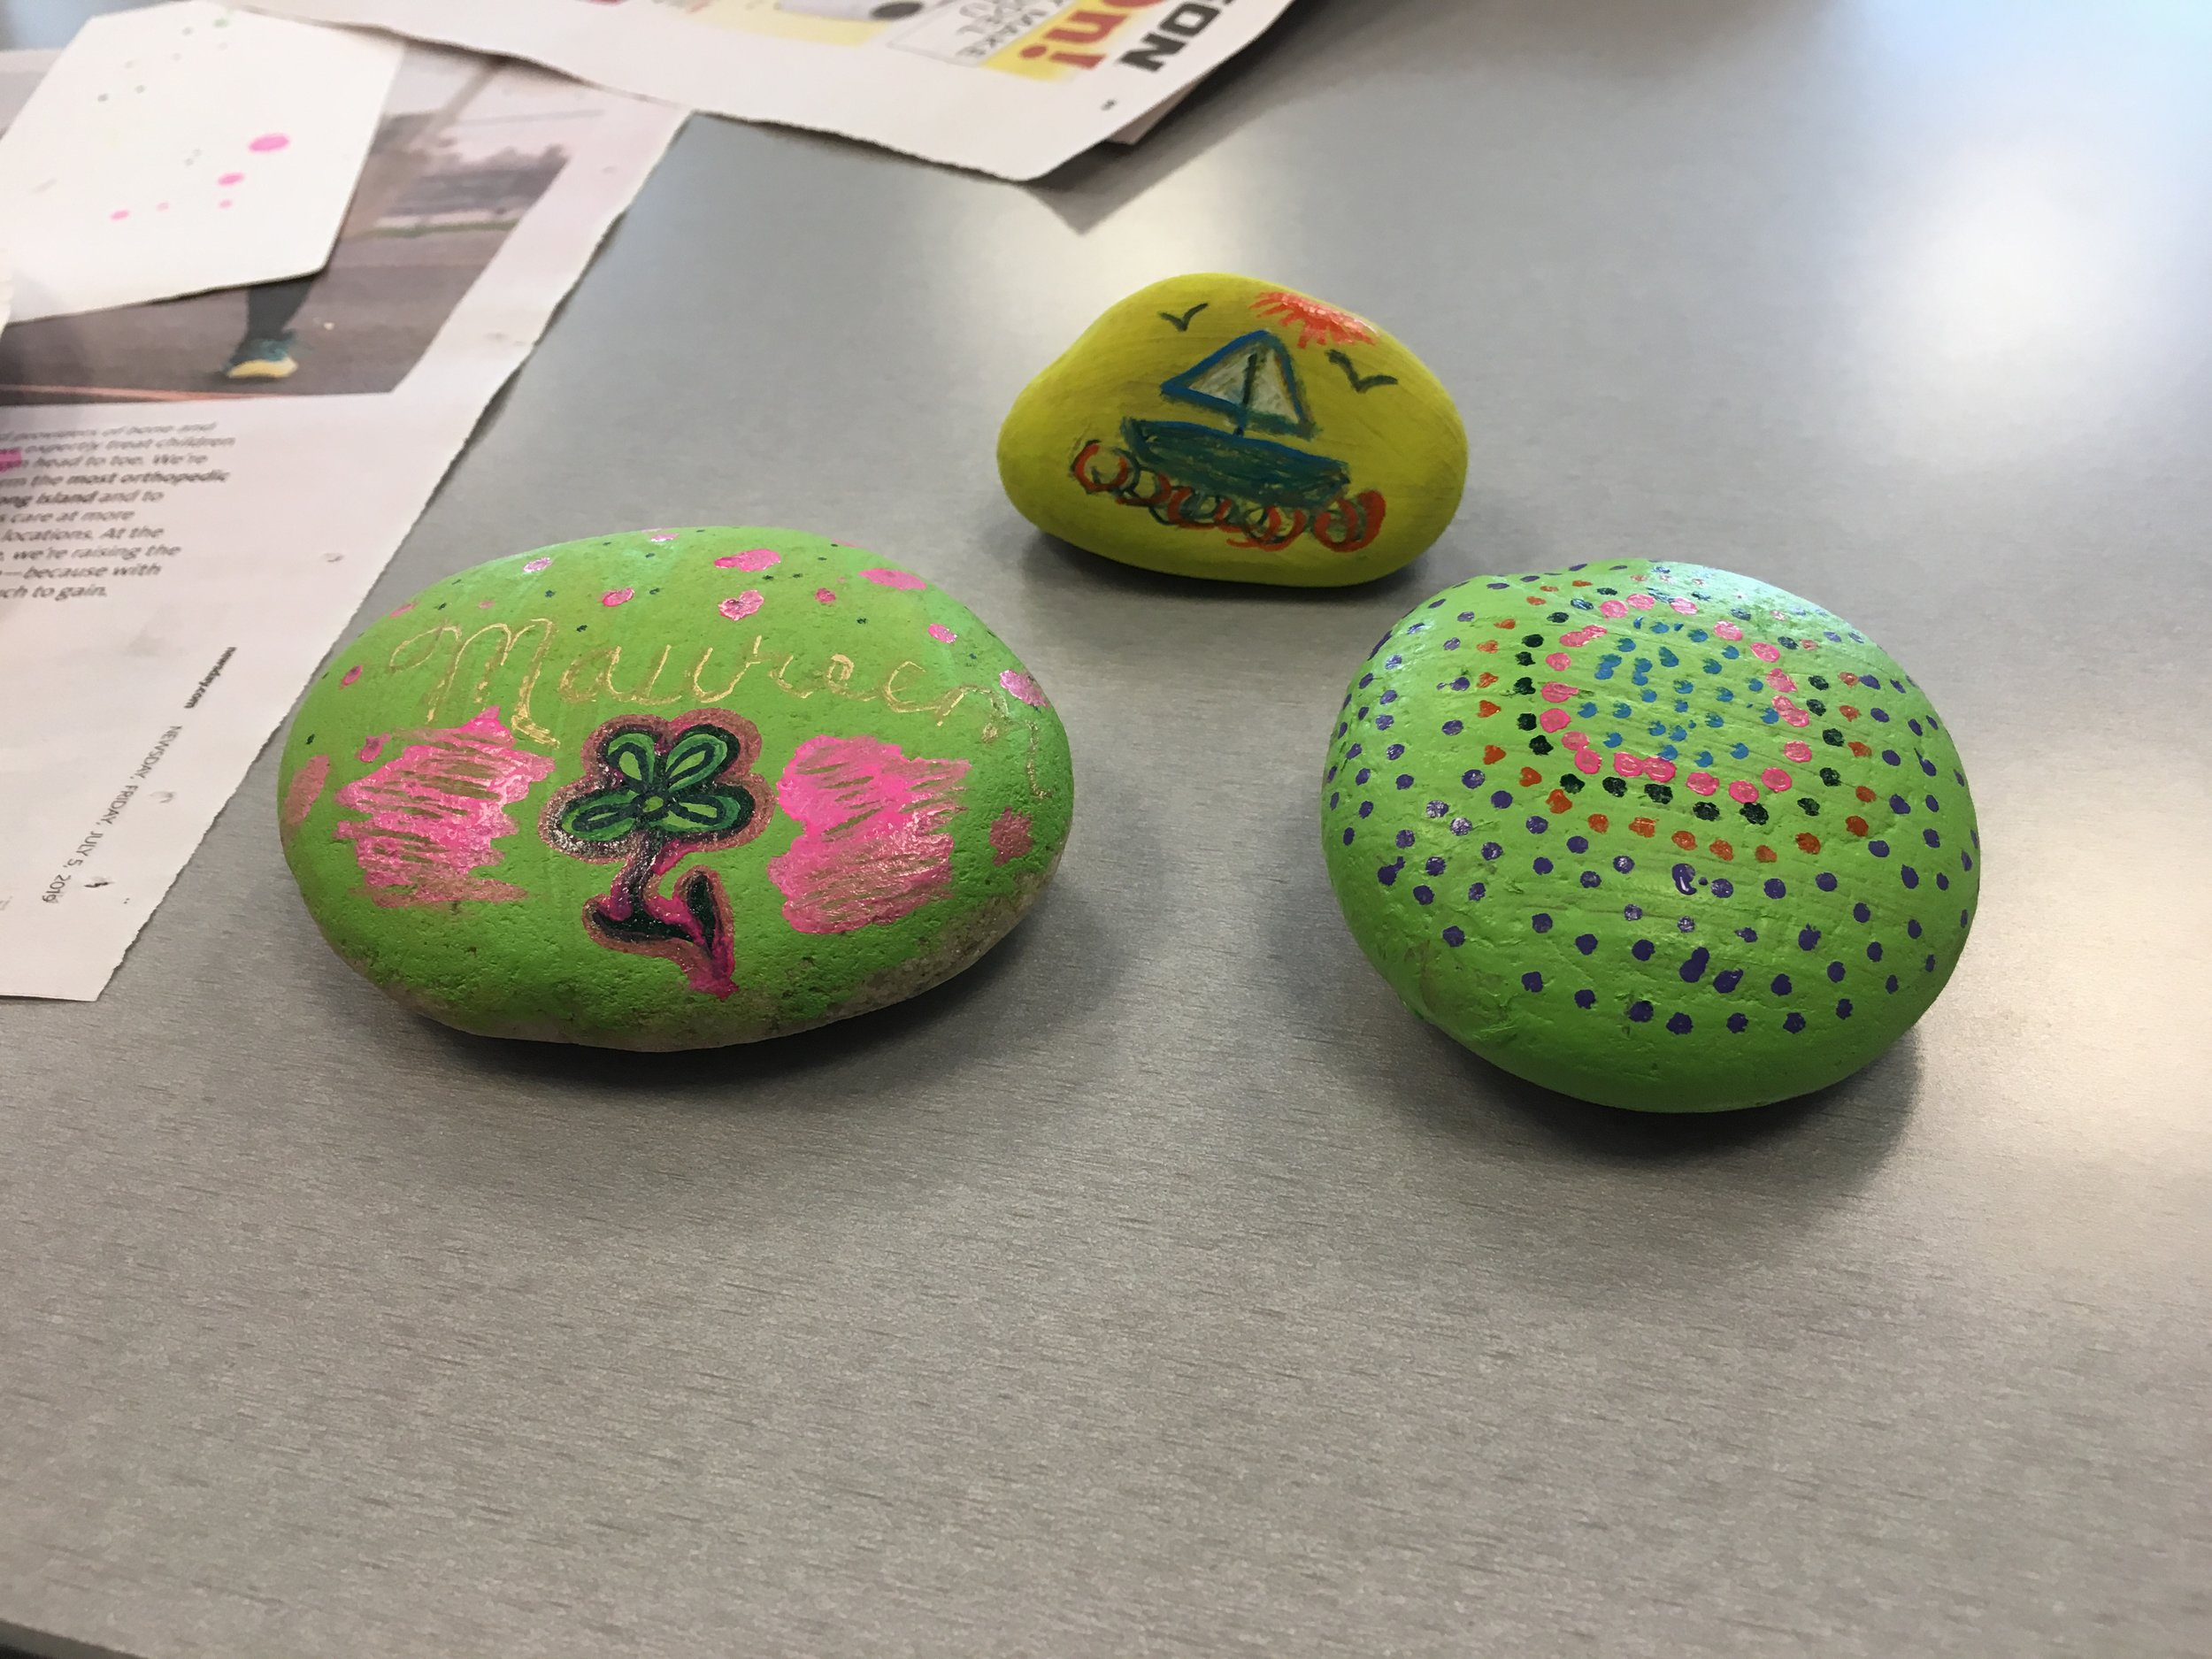 Atria Kindness Rocks Photos - Everyone had a great time painting and sharing kindness rocks on Friday, July 19th. Here are some pictures.